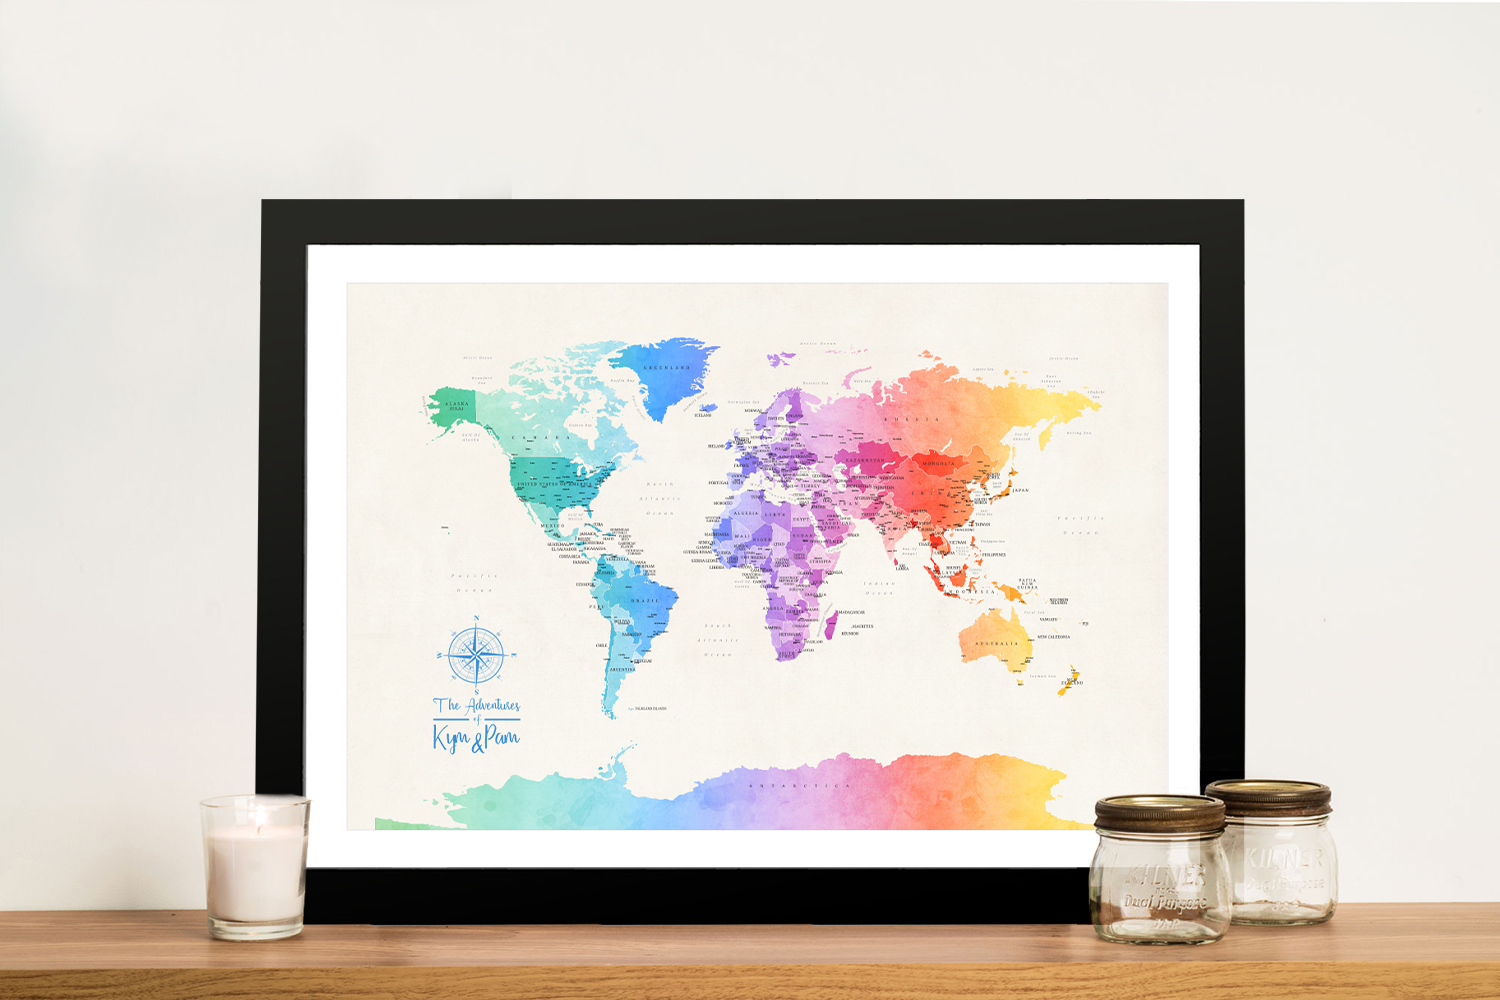 Buy a Political World Map in Colourful Watercolour Tones | Personalised World Map in Watercolours 3